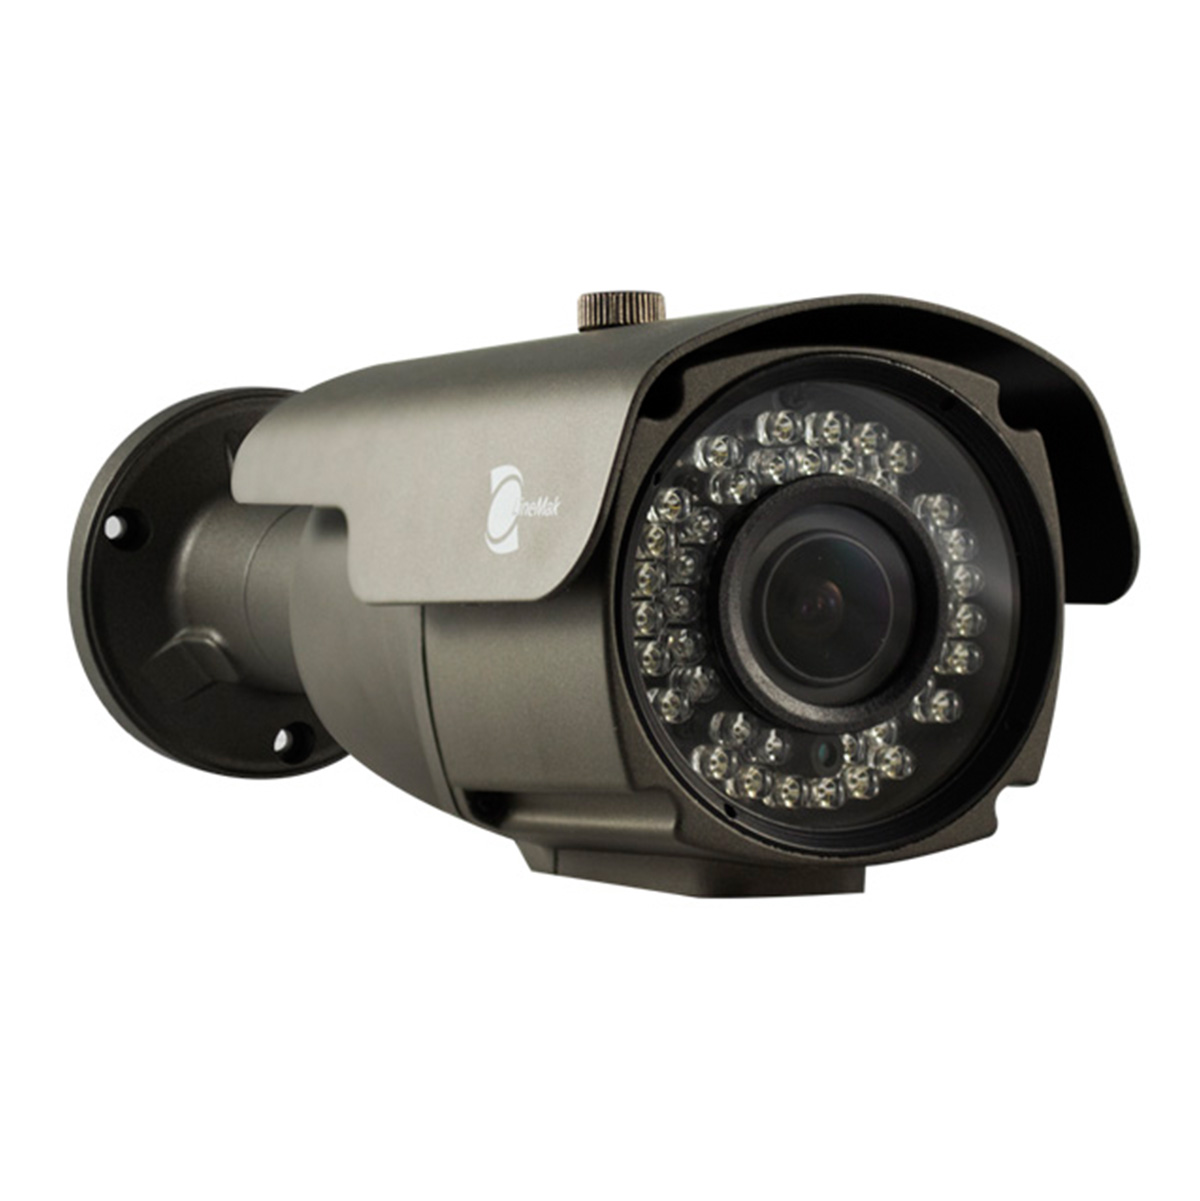 Bullet camera 1/3 SONY CCD 800TVL 2.8-12mm lens 42 LEDs 131ft IR IP66 - Image 1